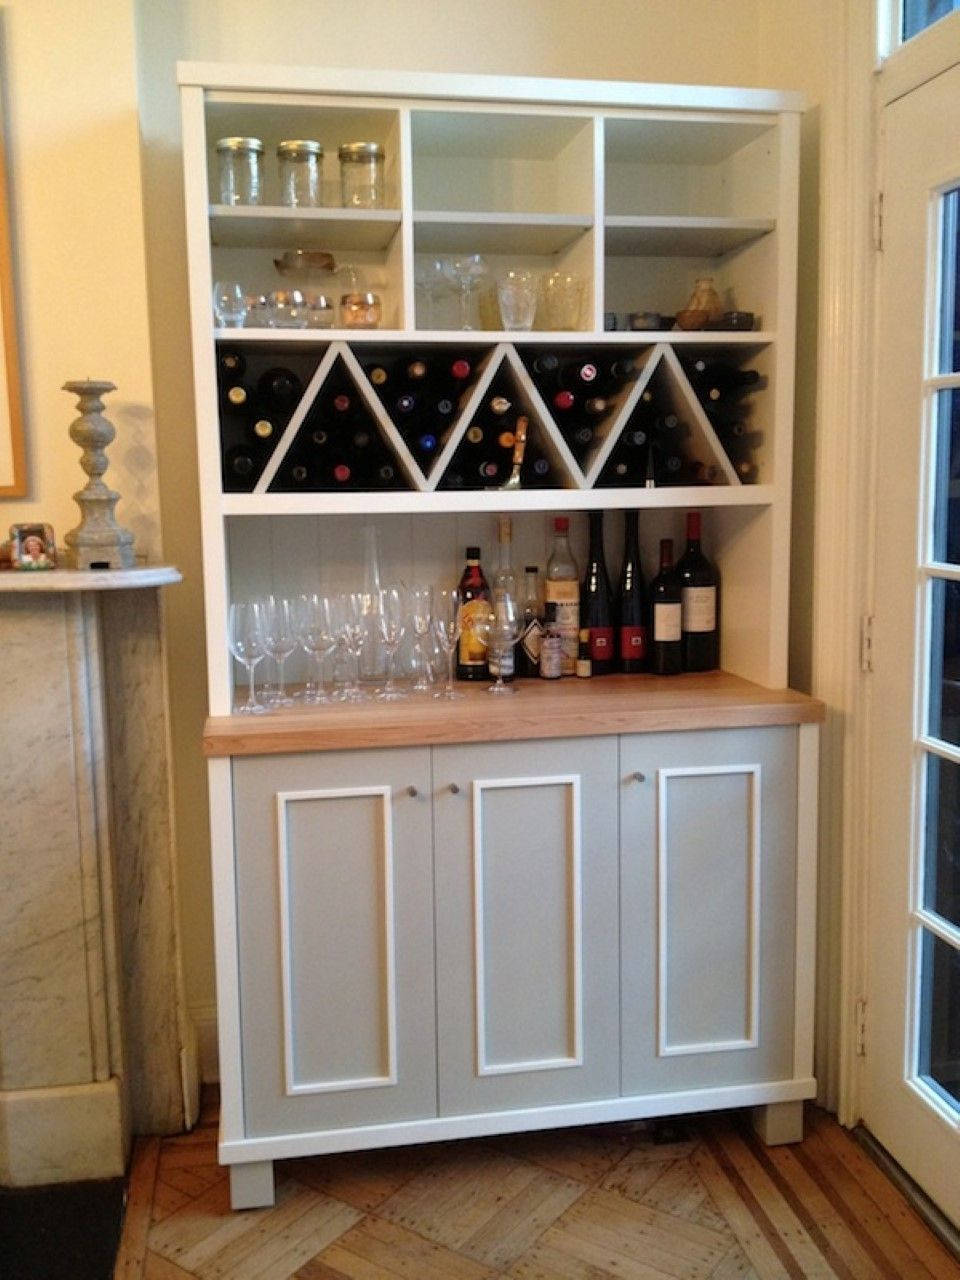 Kitchen Cabinet With Wine Storage Grape Kitchen Decor Wine Rack Cabinet Wine Storage Cabinets